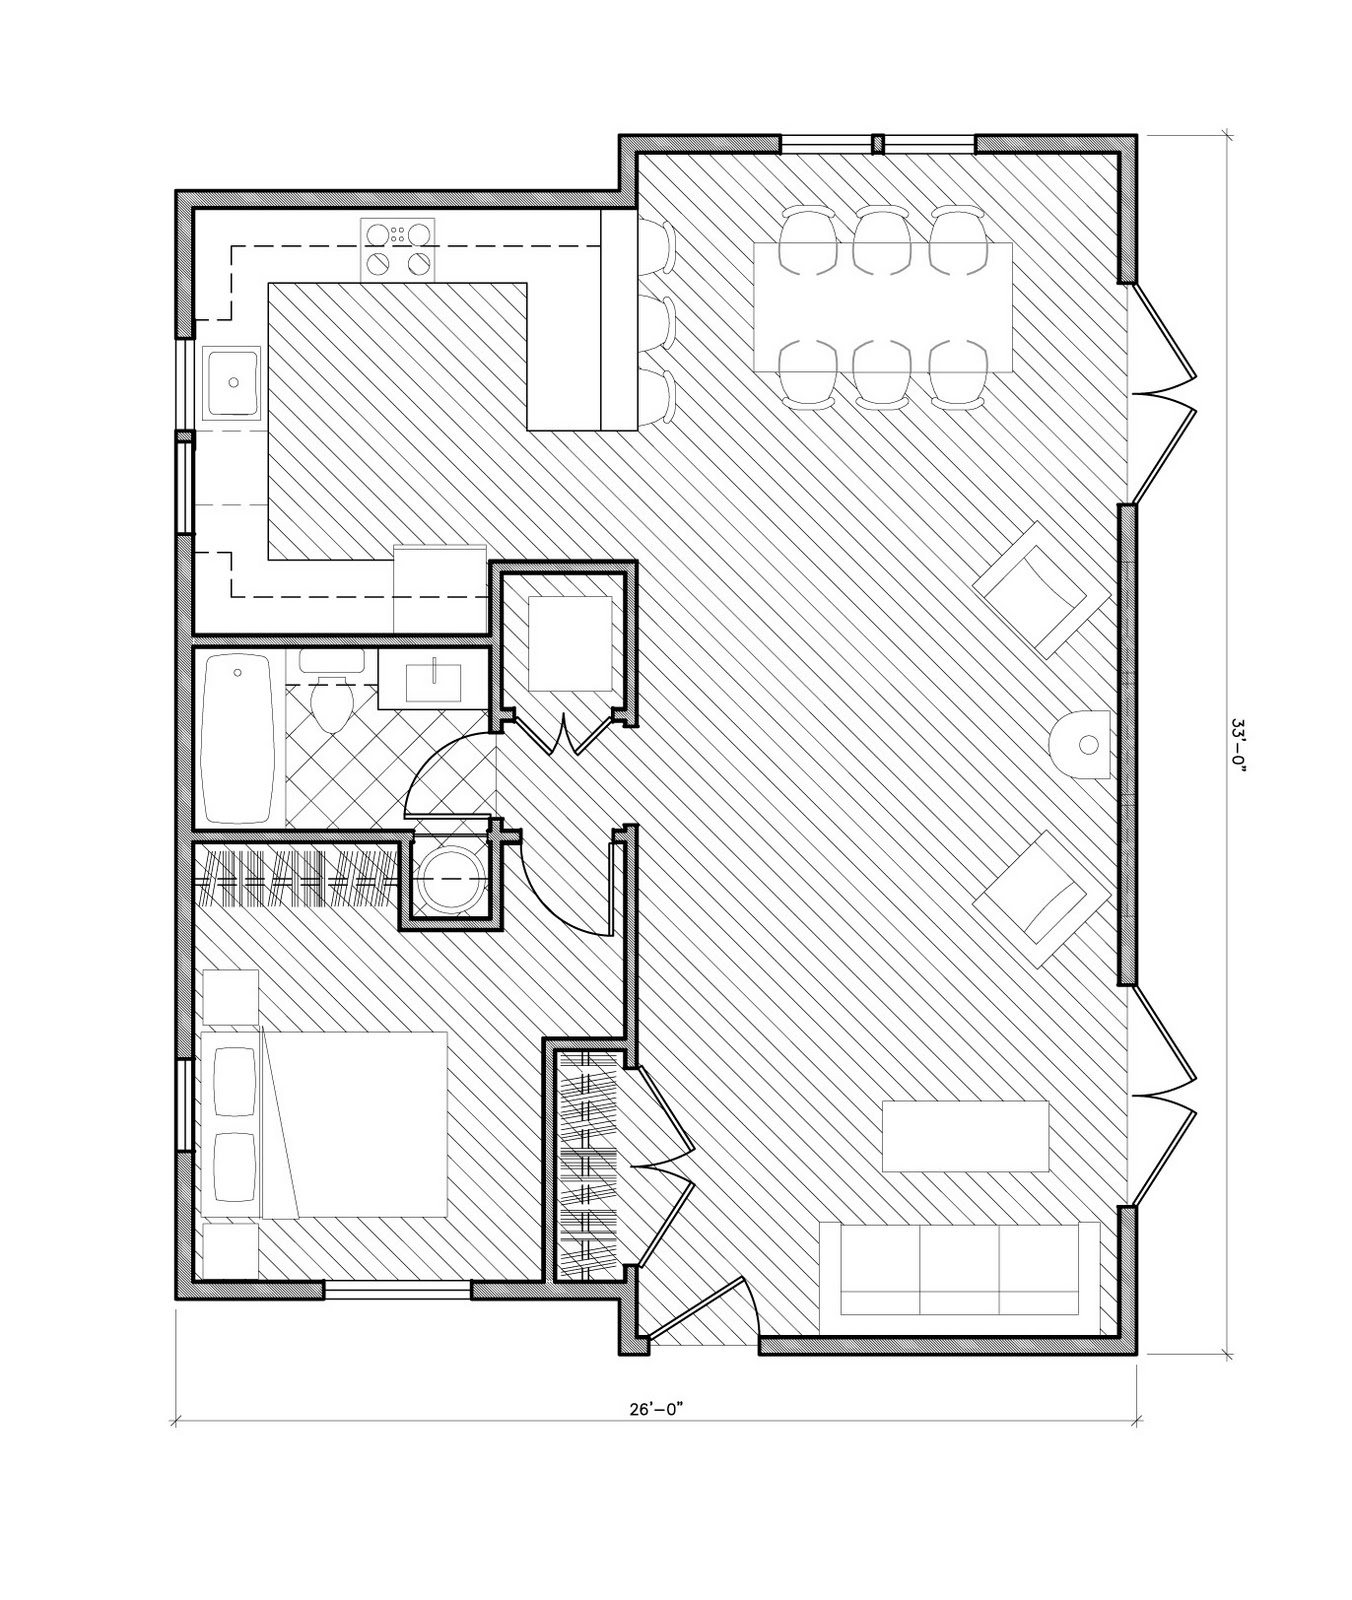 Mother In Law Cottage Plans on for small homes 800 sq ft floor plans